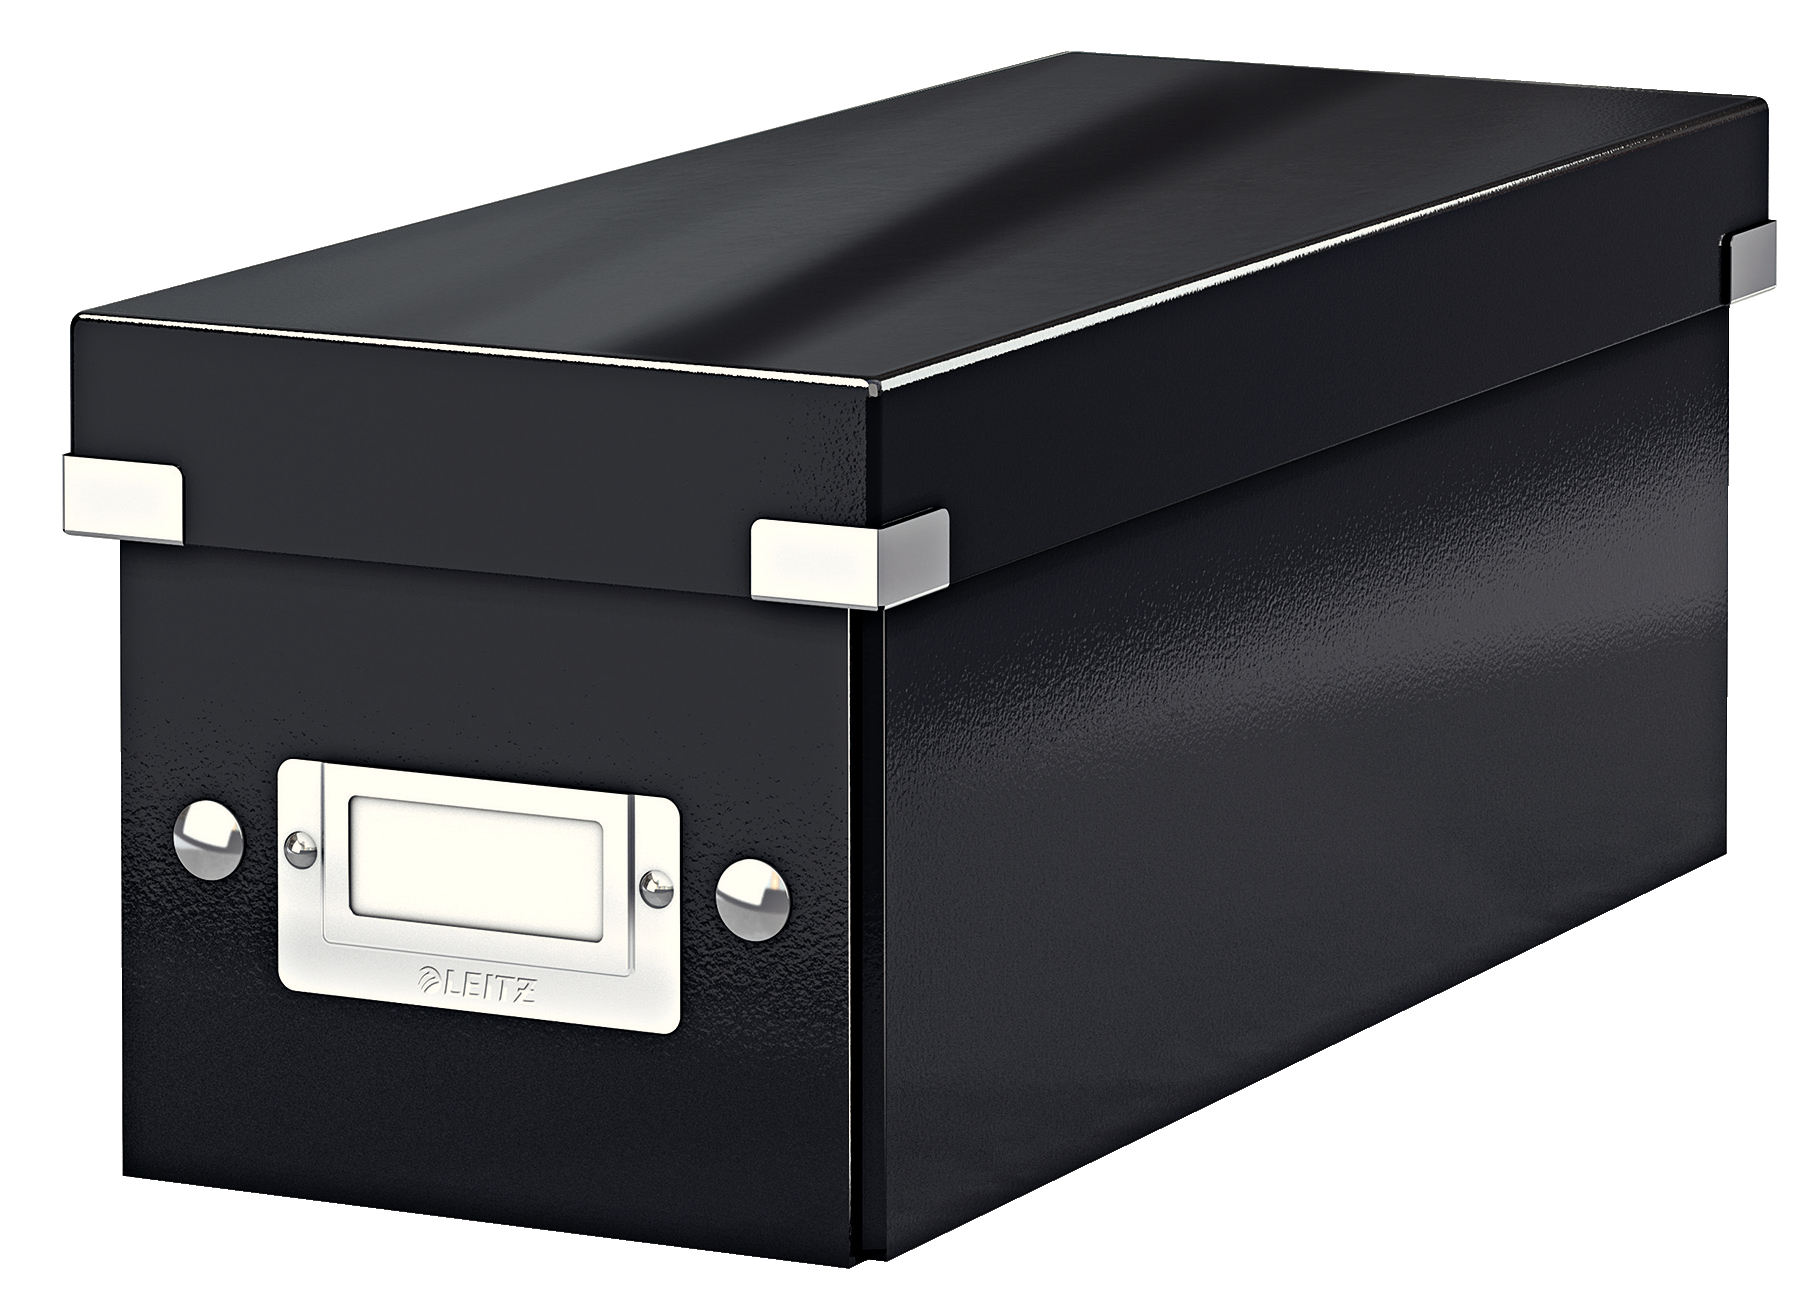 esselte Leitz Click & Store Cd Storage Box Black 60410095 - AD01